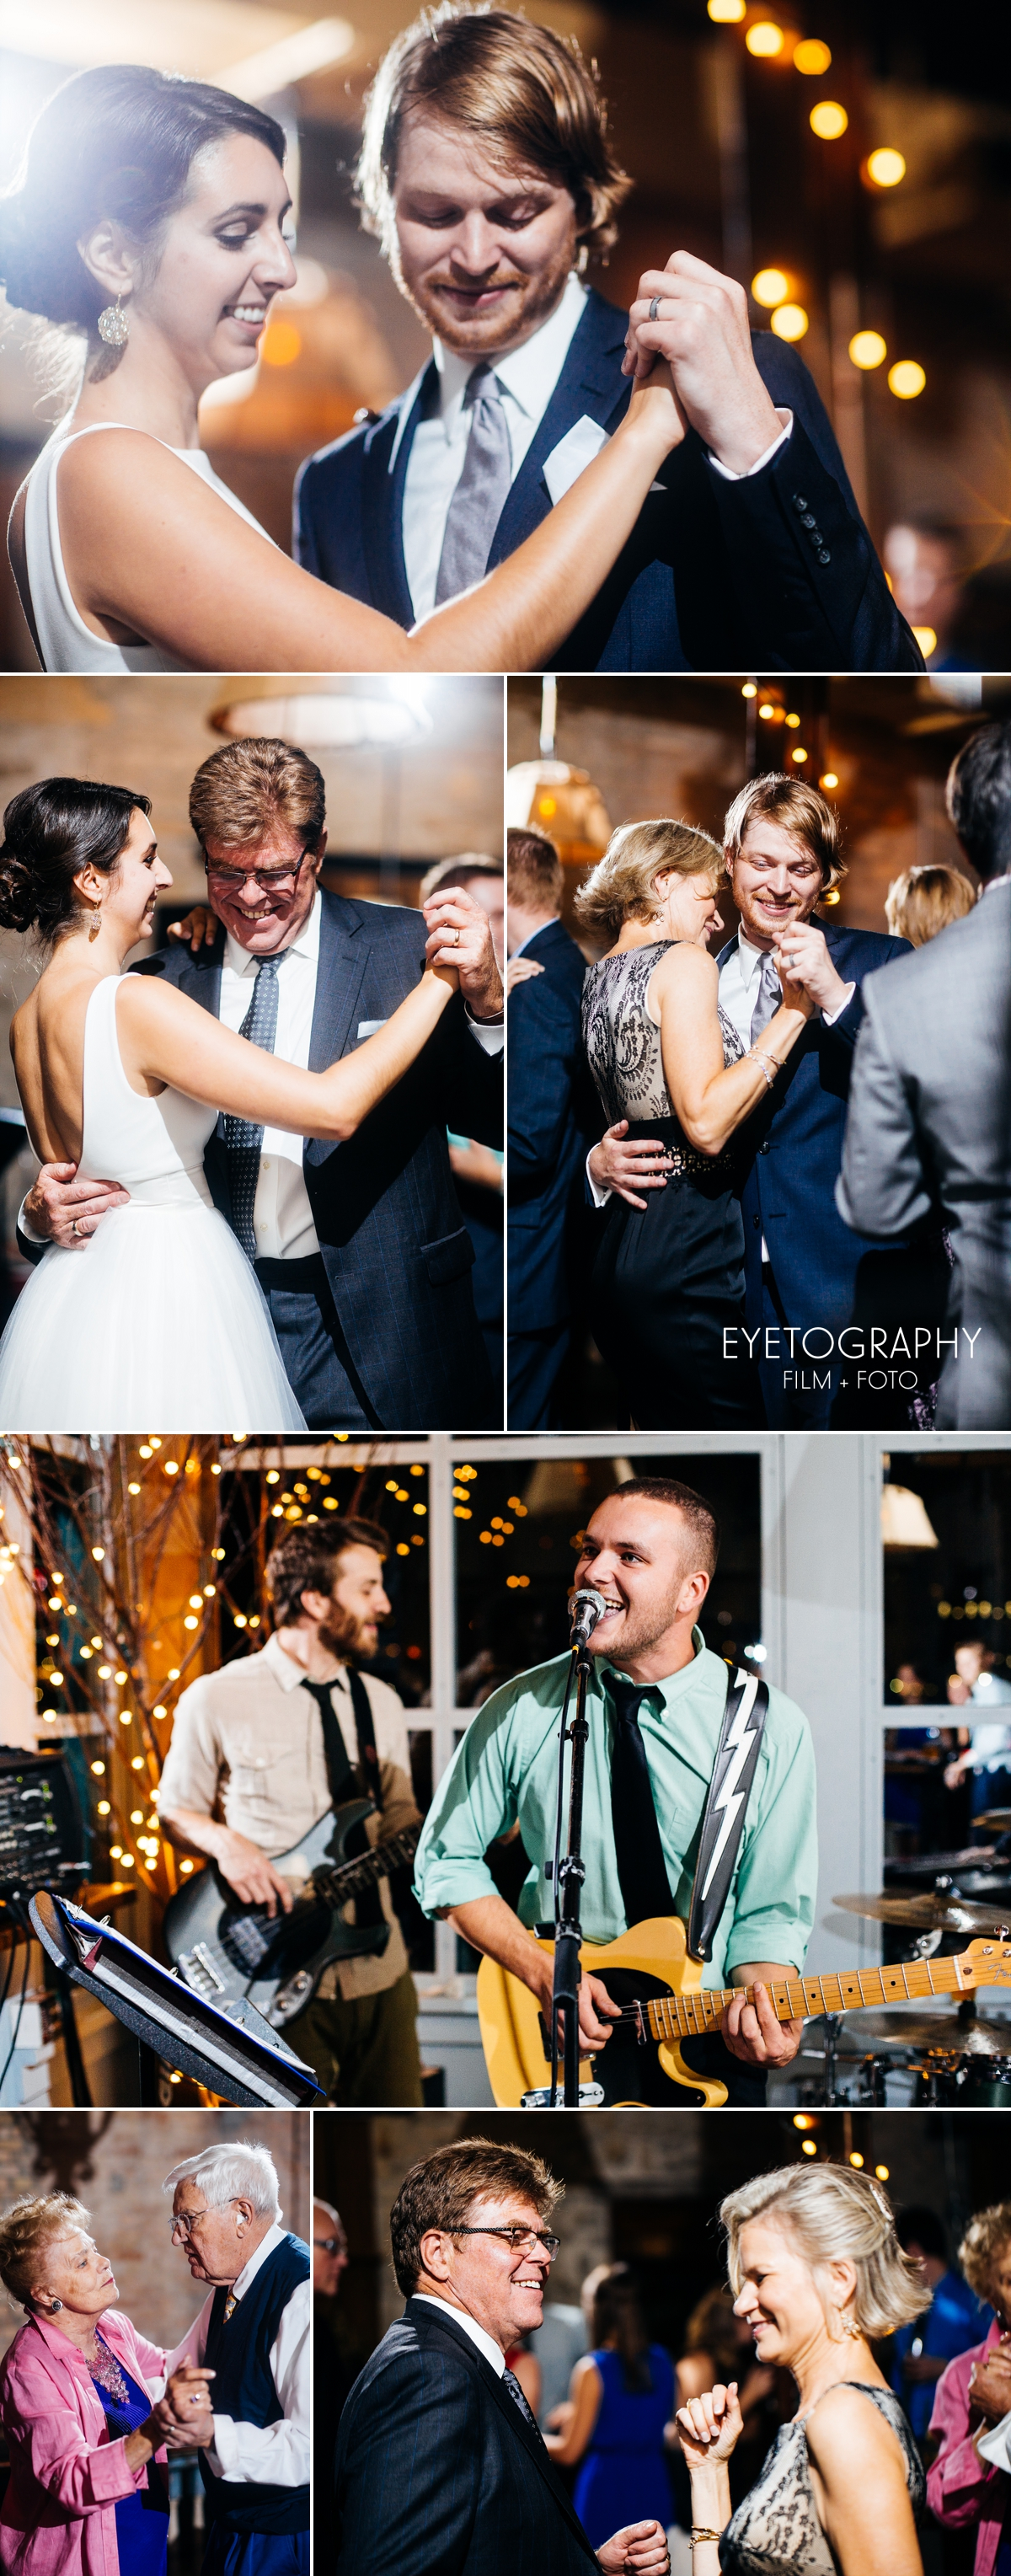 Aster Cafe Wedding - Eyetography Film + Foto | Katharine + Blake 11